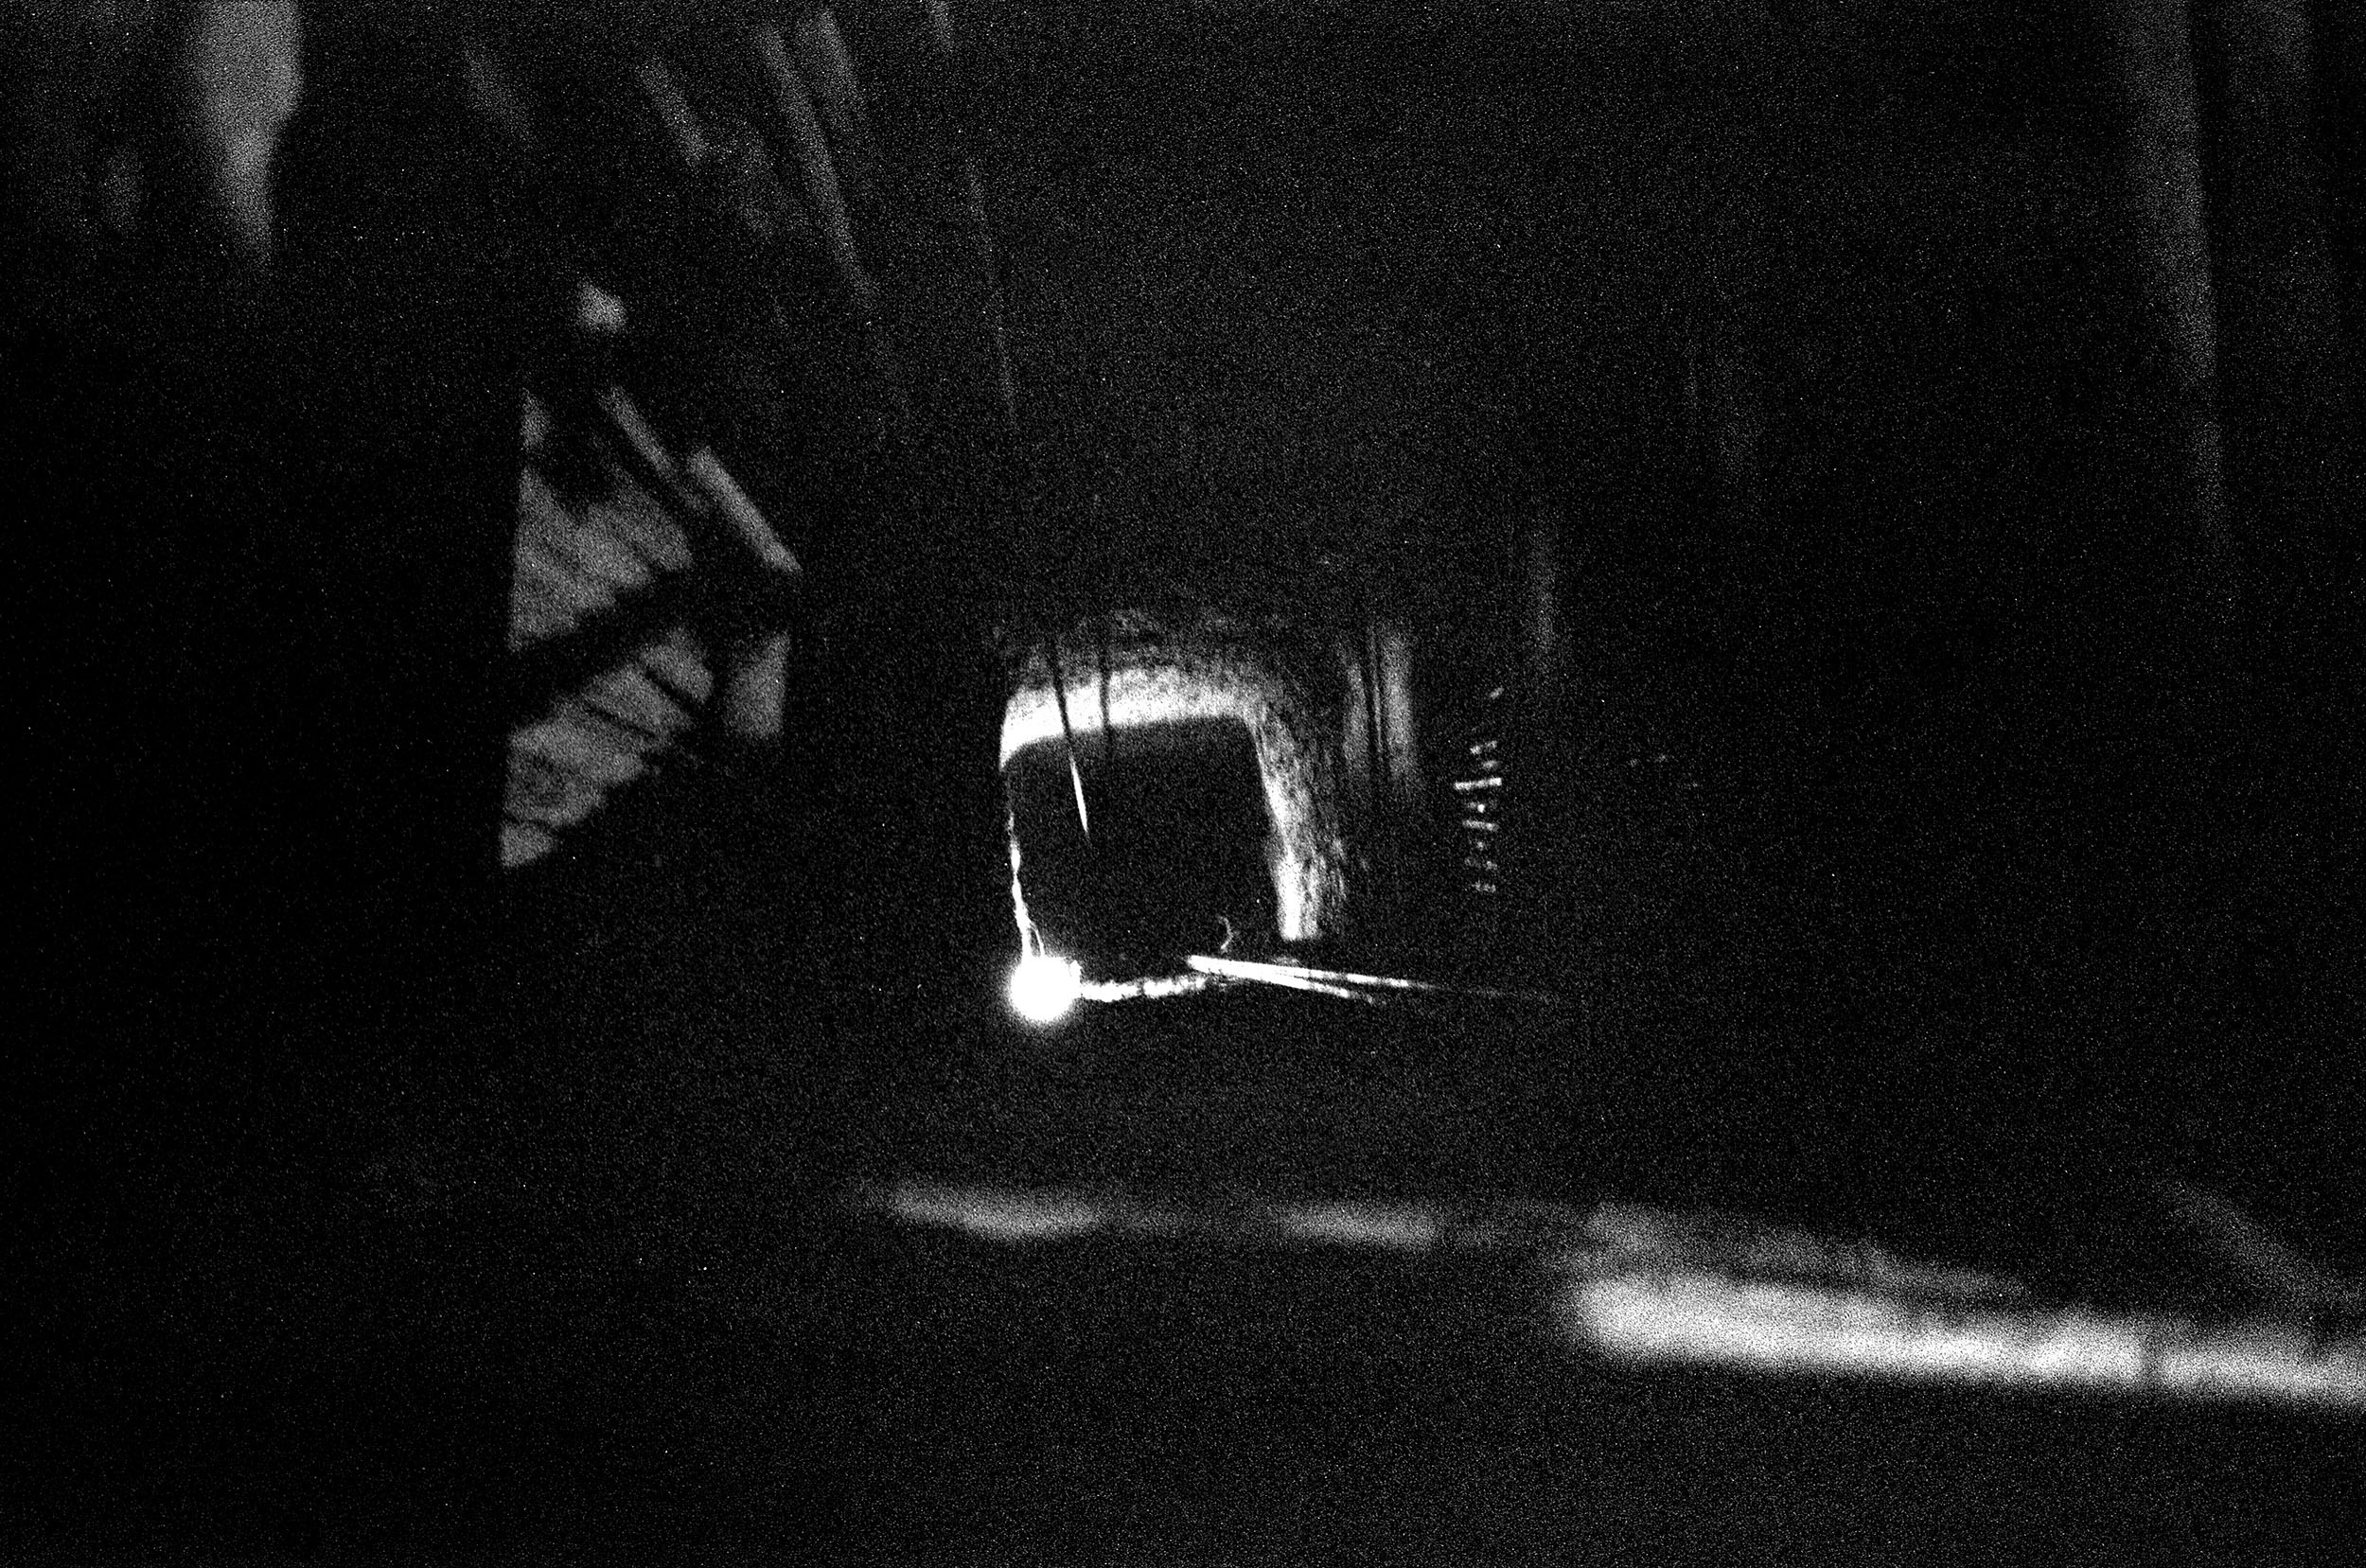 A mine shaft at night. Gold miners work around the clock to meet increasing demand.